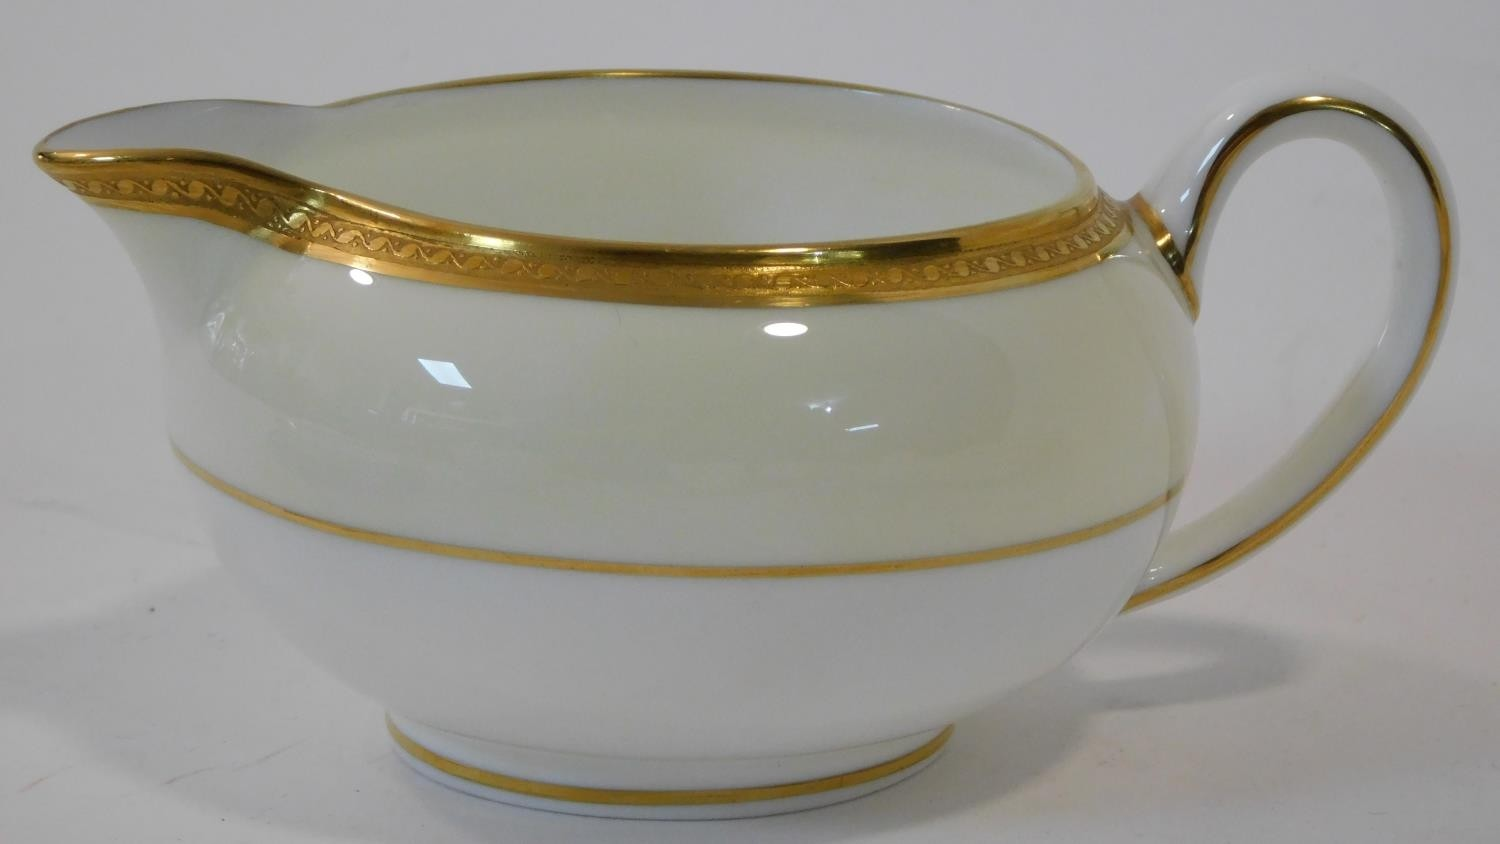 A six person part scrolling gilded design porcelain Wedgwood coffee set, pattern number W4249. - Image 11 of 12